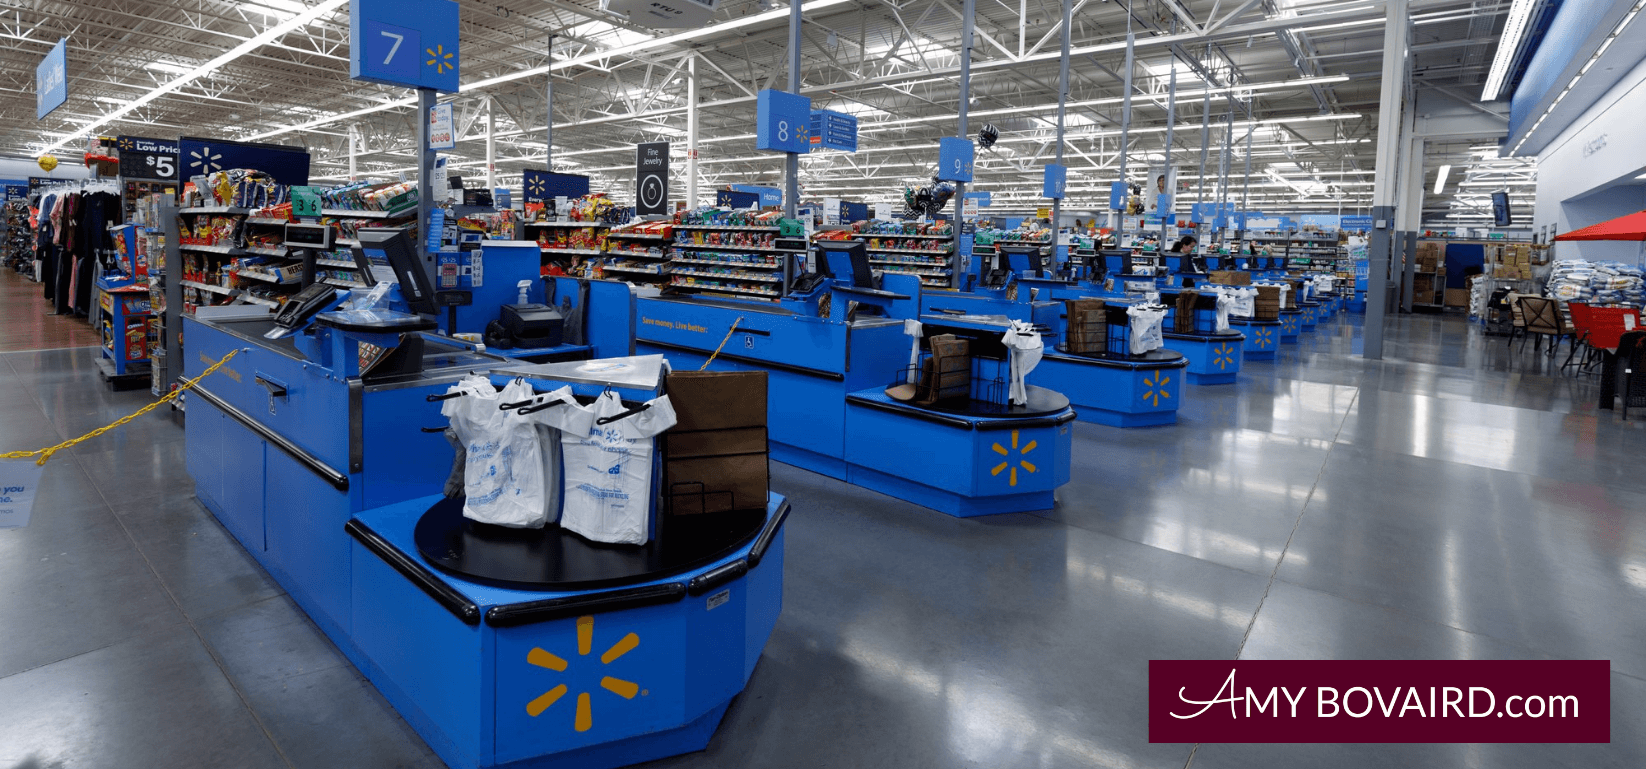 image of wal mart for Amy Bovairds post called completing the shopping expedition part two